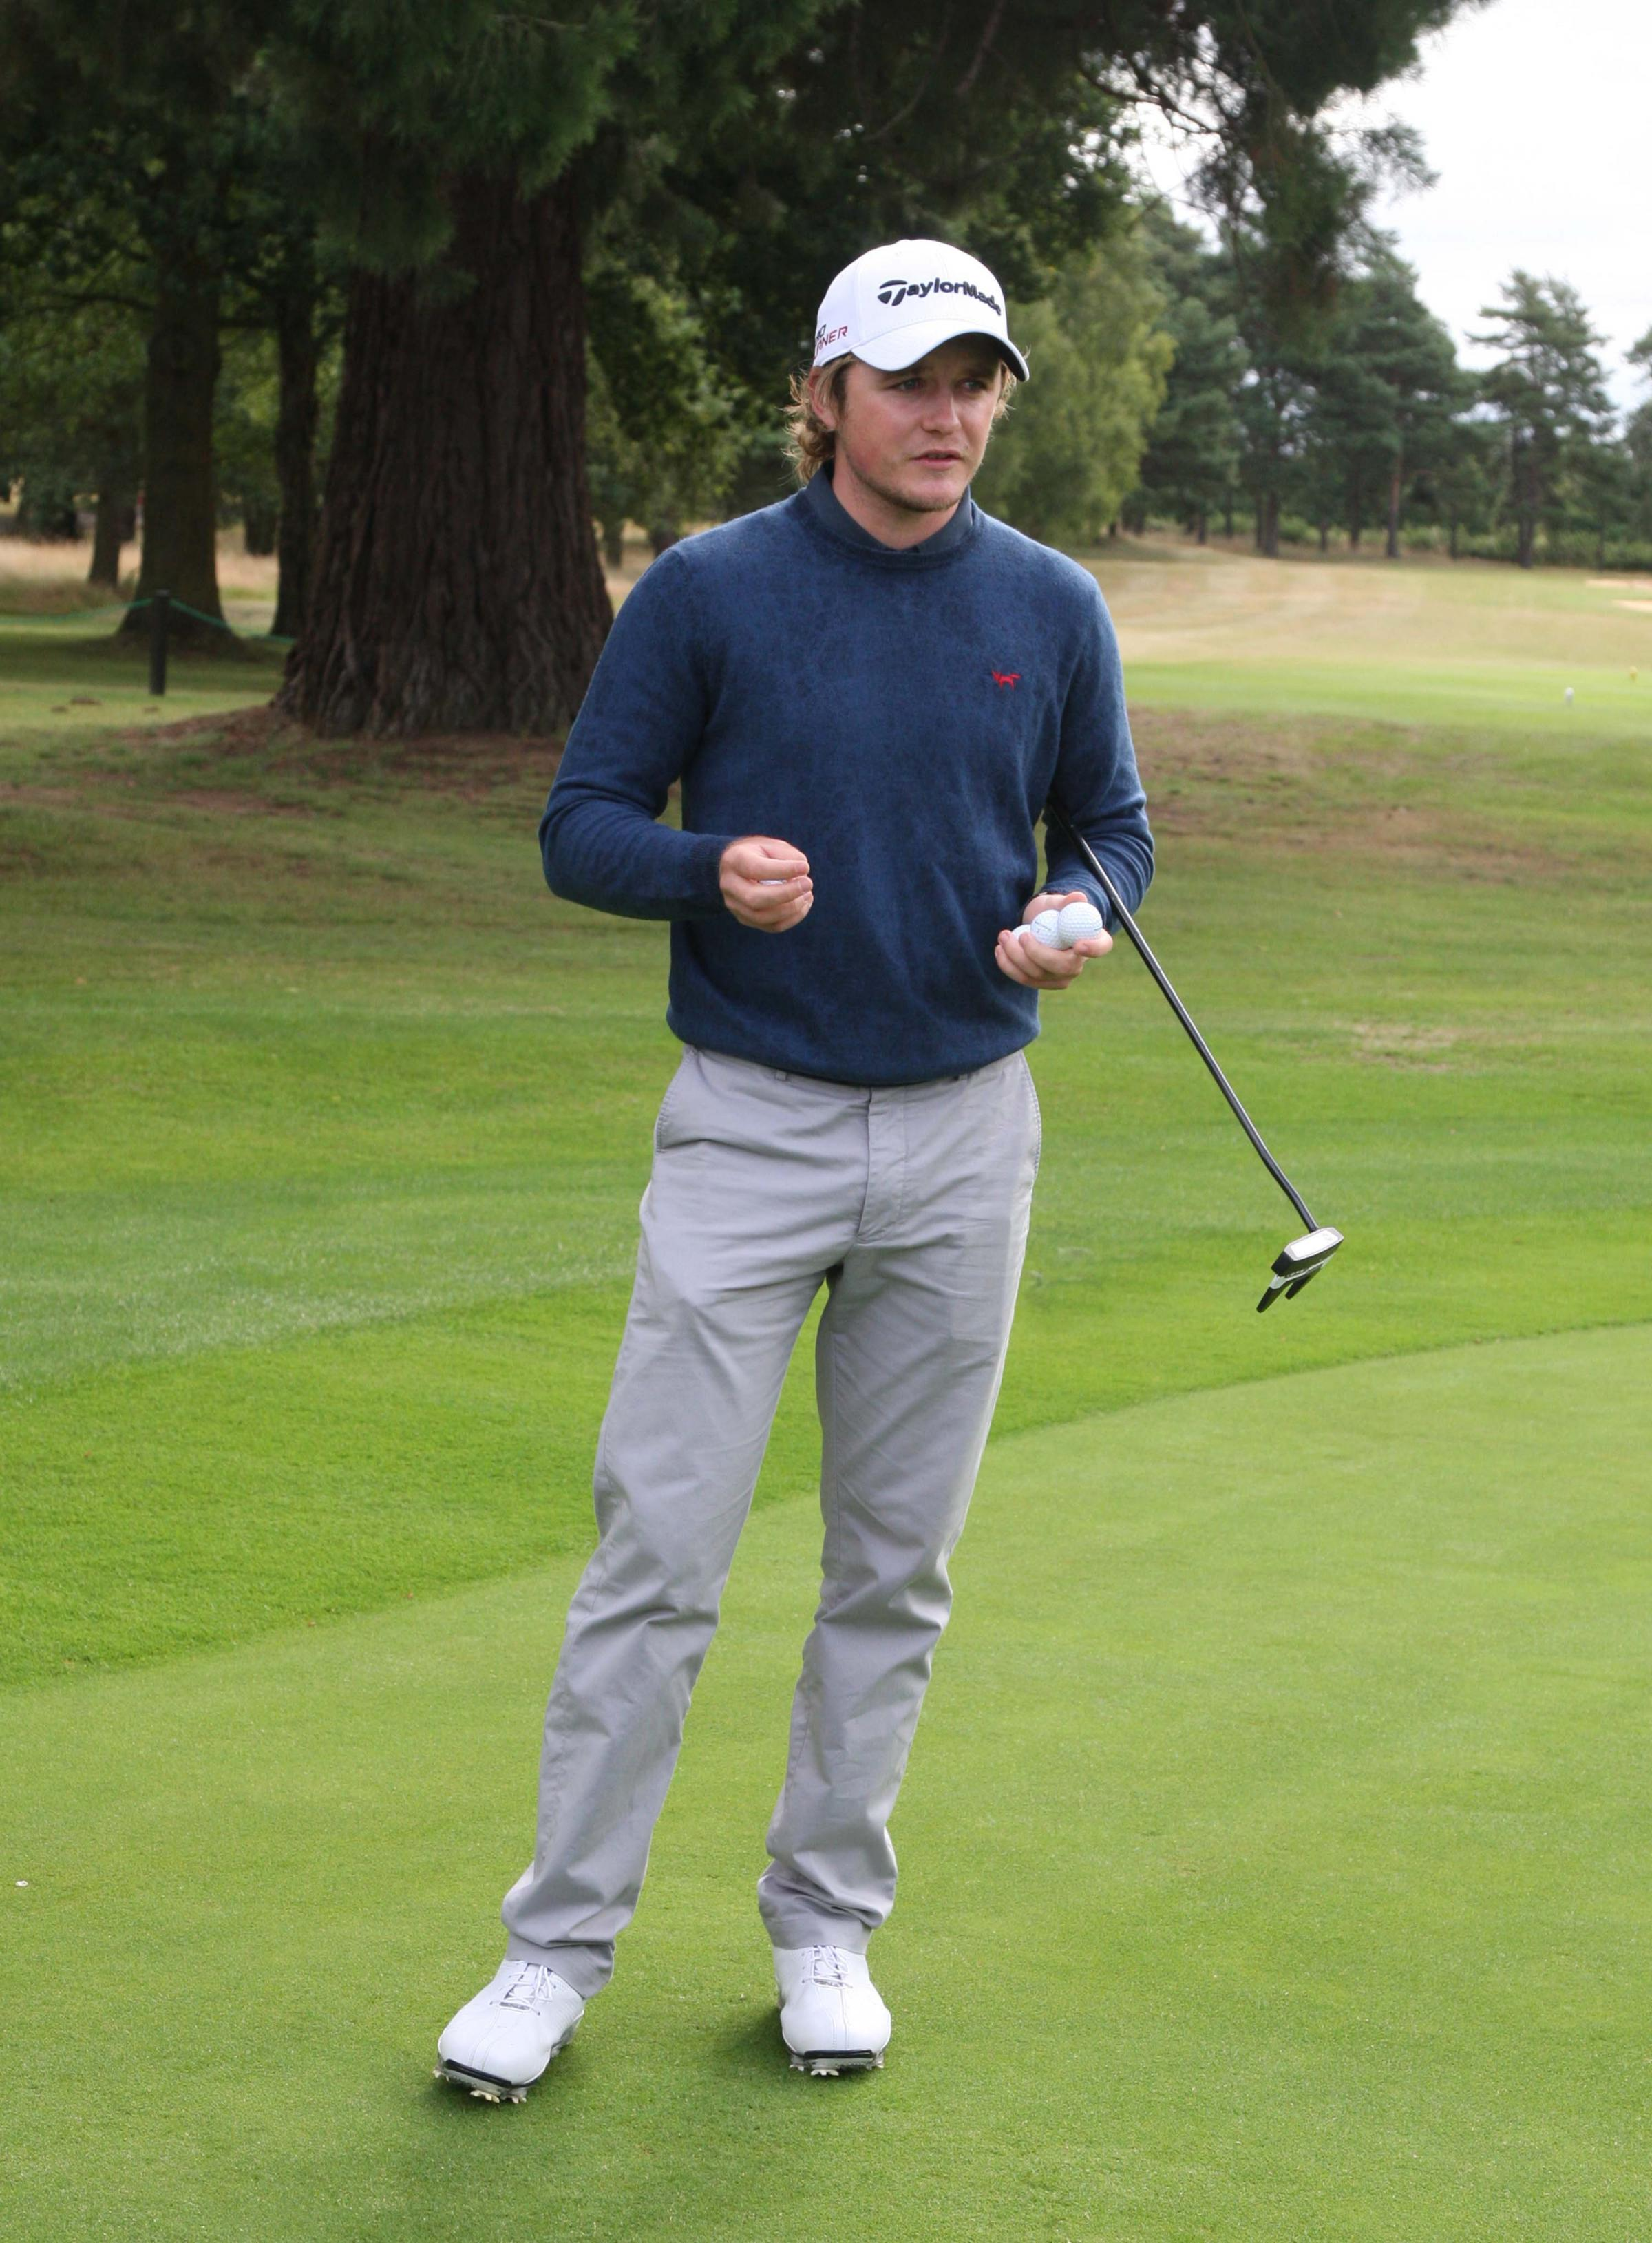 Eddie Pepperell finished 15 shots behind the winner